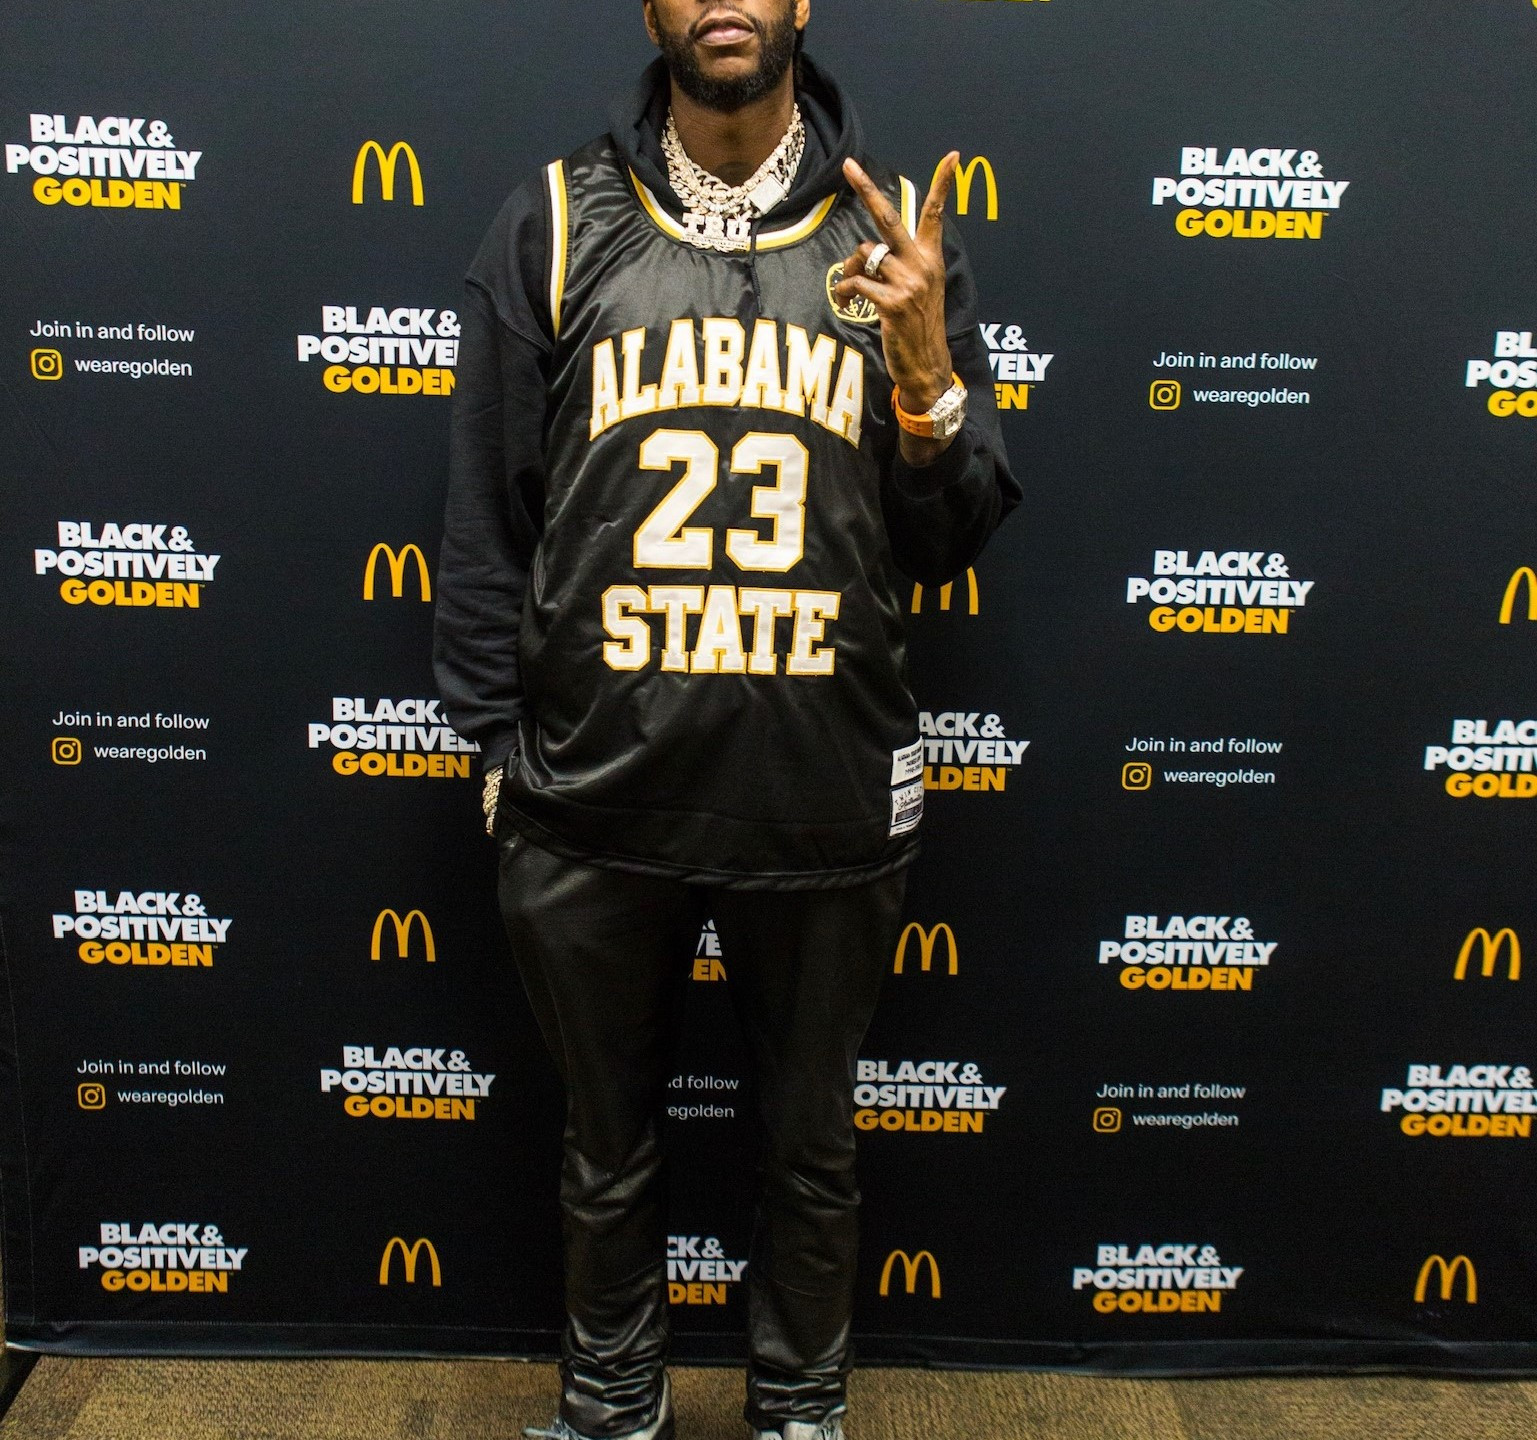 2 Chainz before performing at t